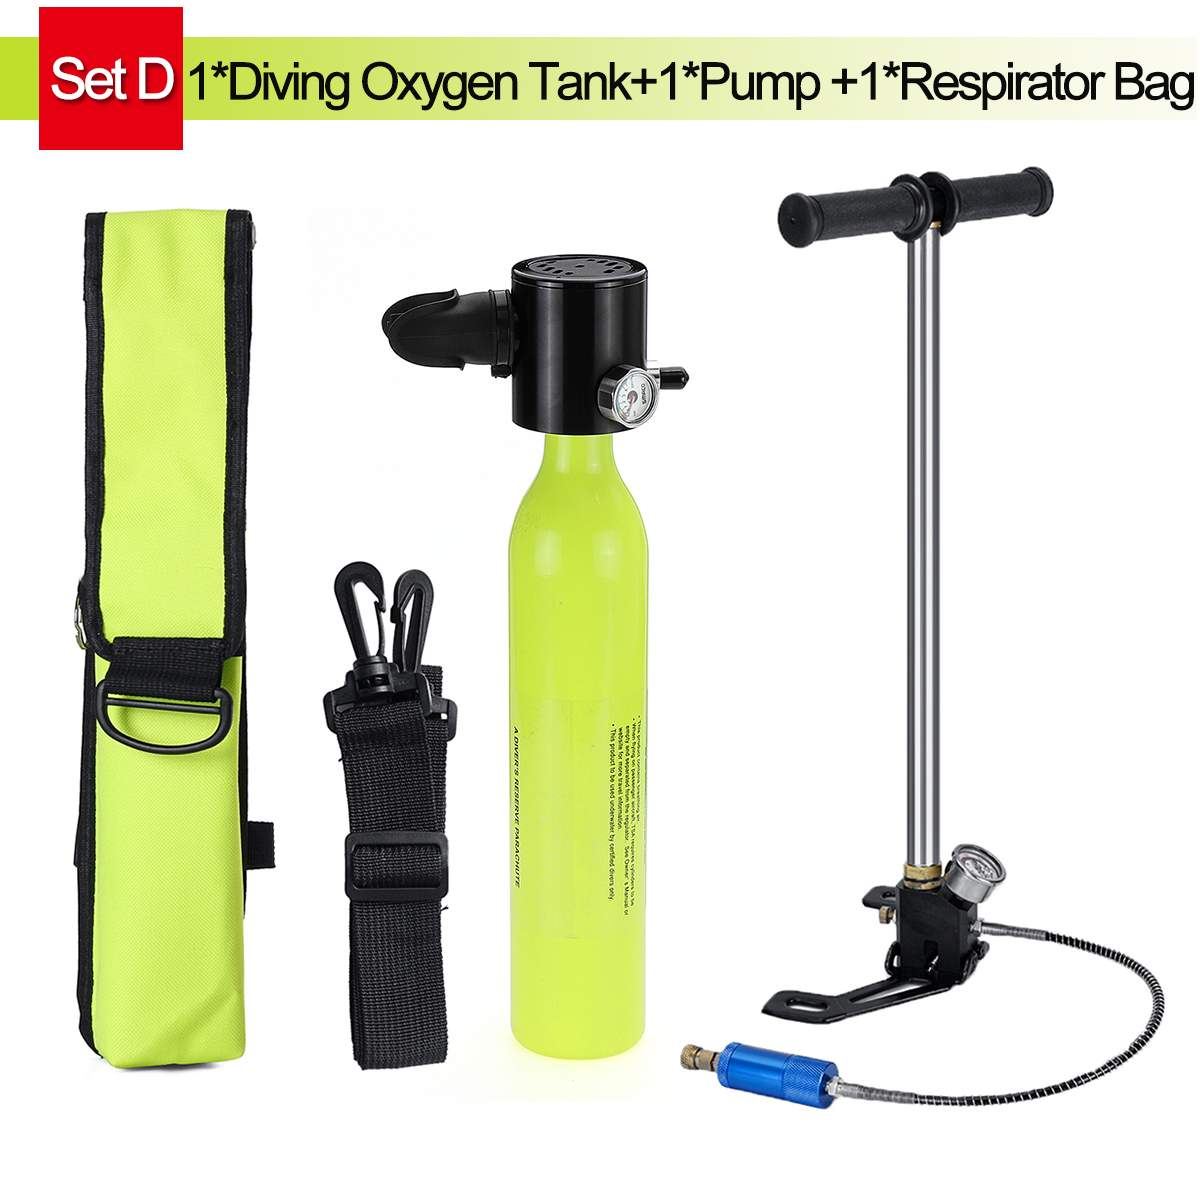 0.5L Portable Mini Scuba Oxygen Cylinder Air Tanks 3000PSI Max Diving Equipment For Snorkeling Underwater Breathing Pump Bag(China)